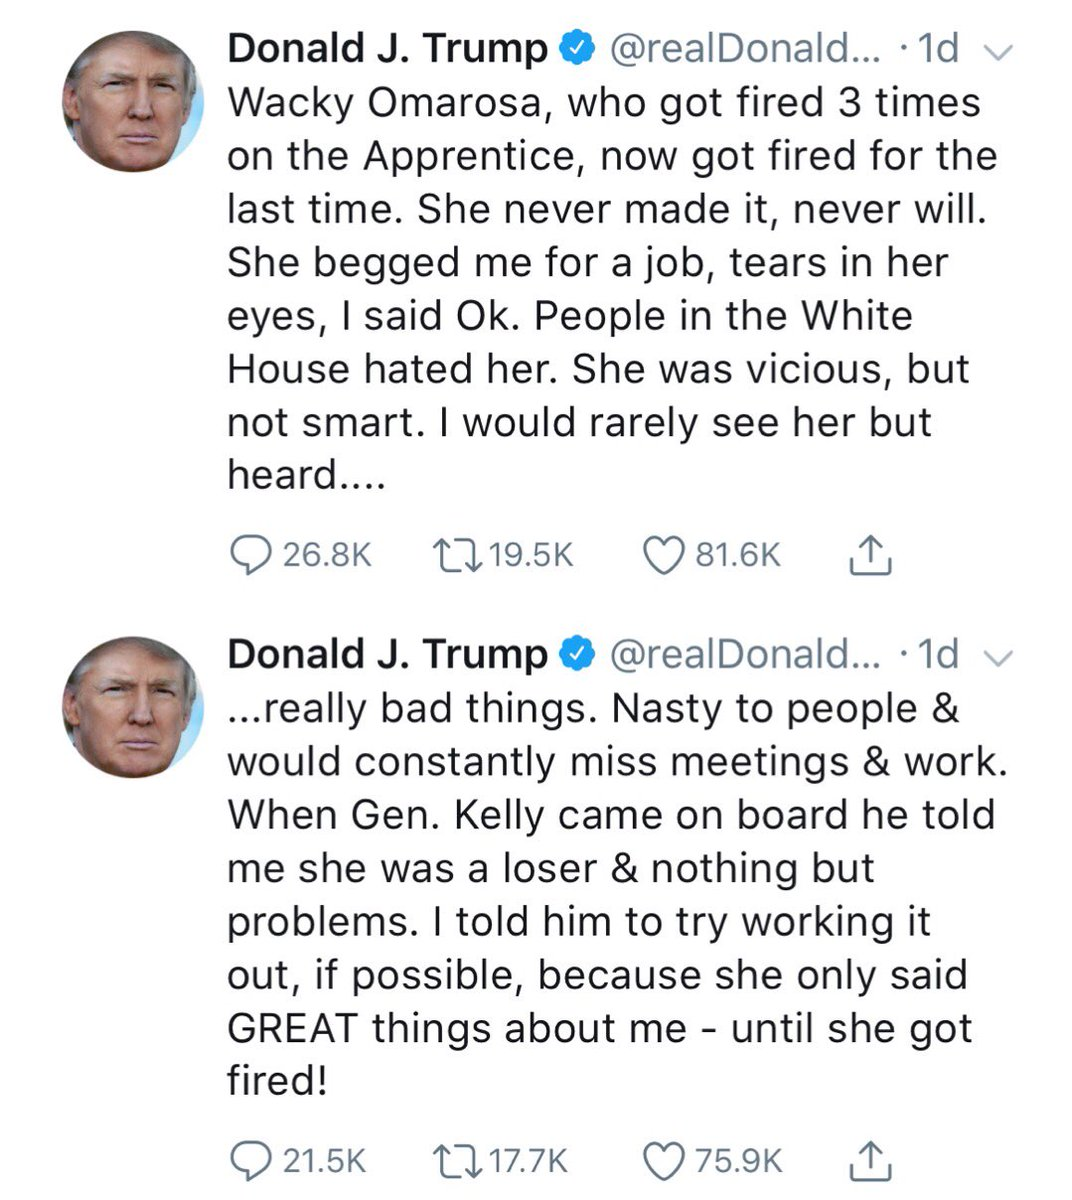 The president says he hired a wacky, nasty serial failure for a White House job because she said nice things about him.